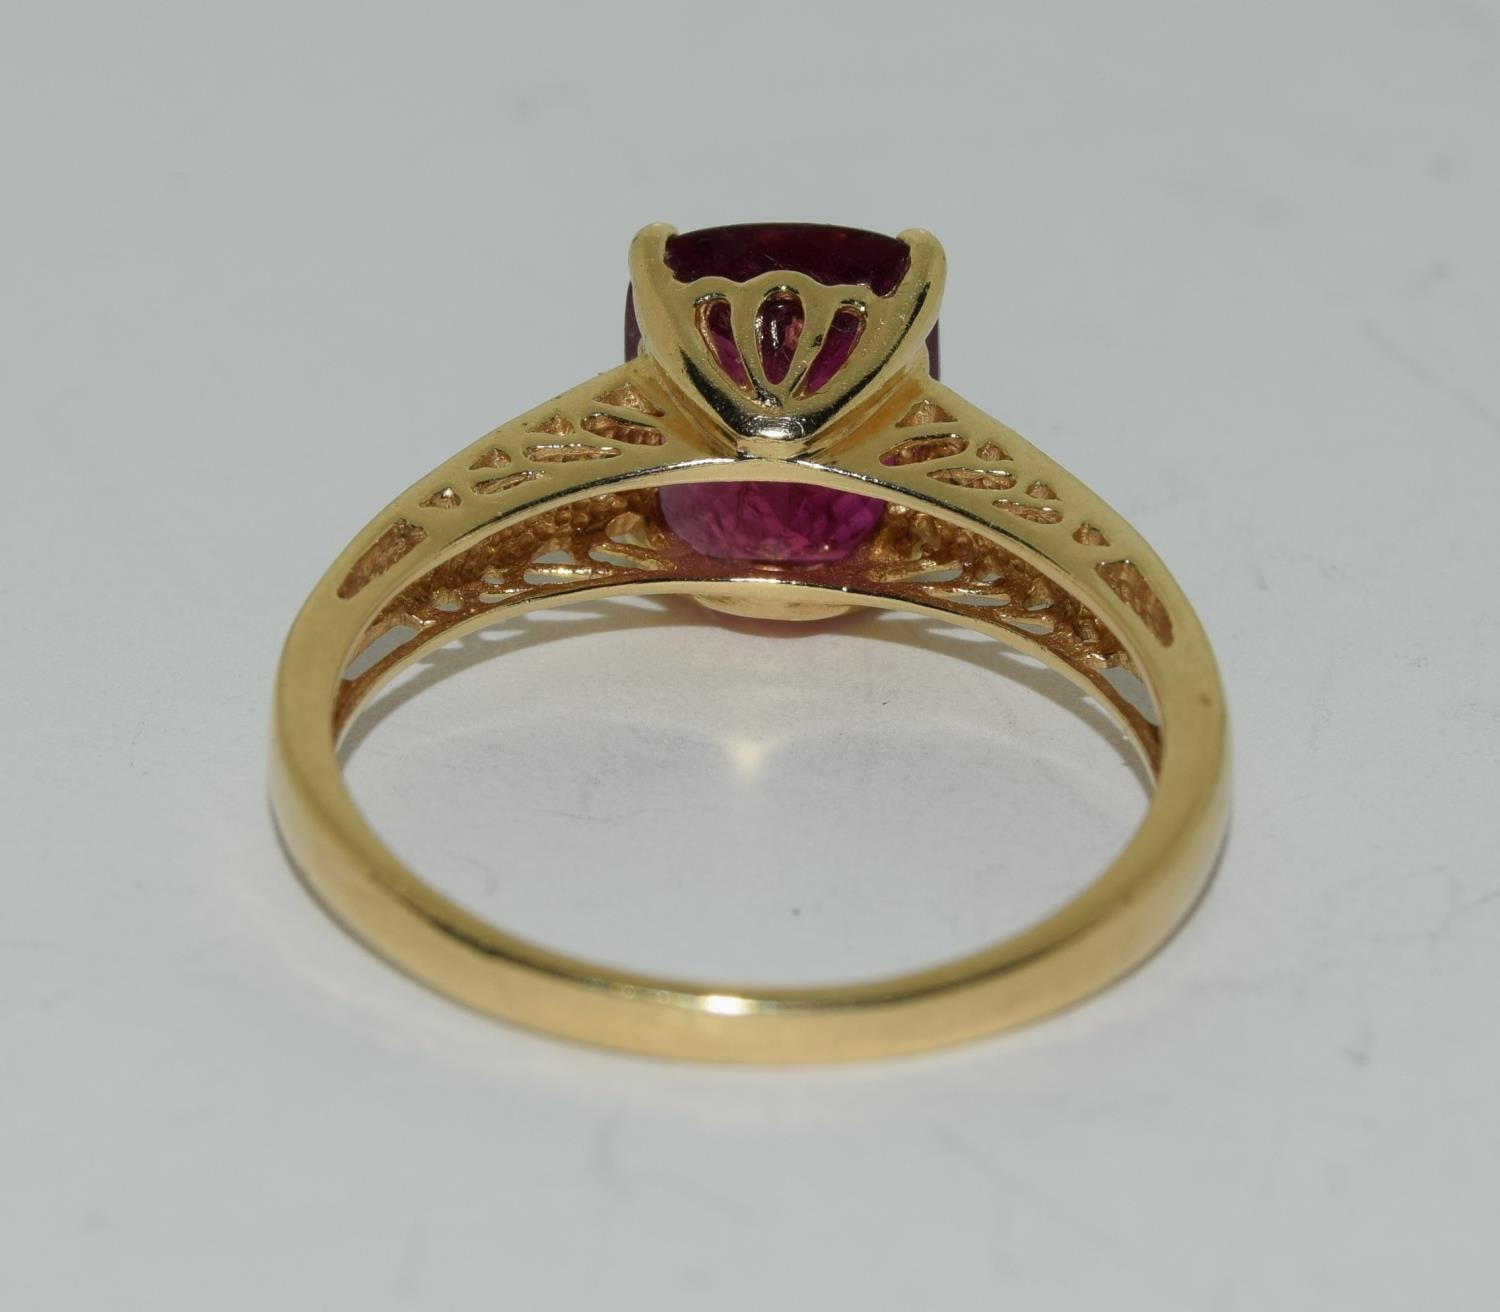 14ct gold ladies ruby and diamond ring ,ruby approx 3ct daimonds to the shoulders size T - Image 3 of 6